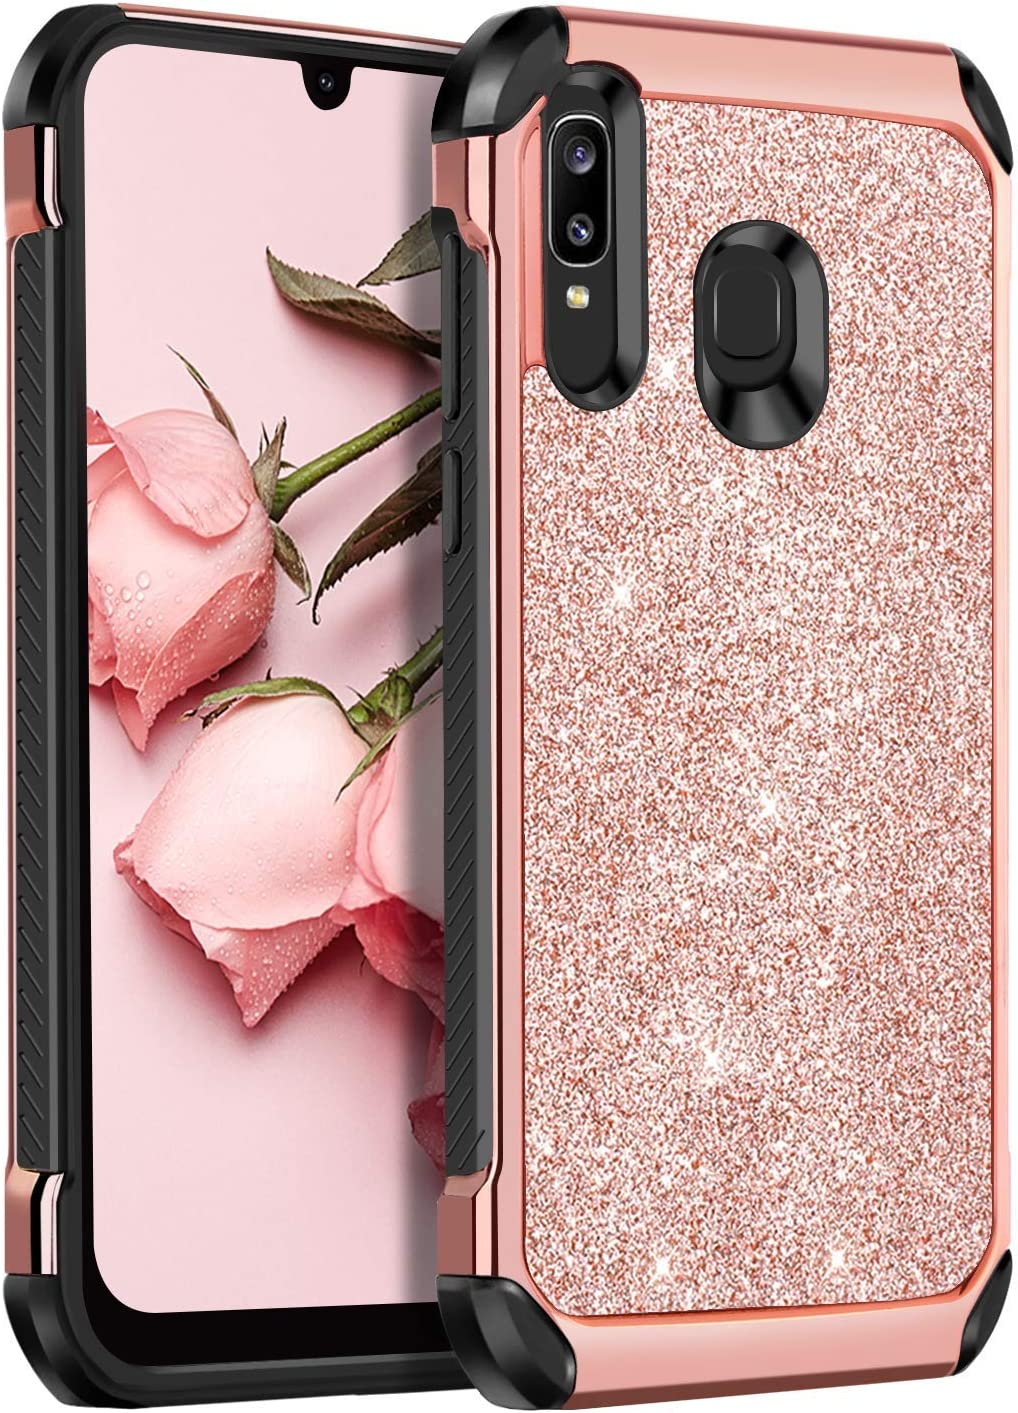 BENTOBEN Samsung Galaxy A50/A30/A20 Case, 2 in 1 Slim Hybrid Glitter Sparkle Bling Hard Cover Soft Rubber Bumper Girls Rugged Shockproof Protective Phone Case for Samsung Galaxy A50/A30/A20 Rose Gold